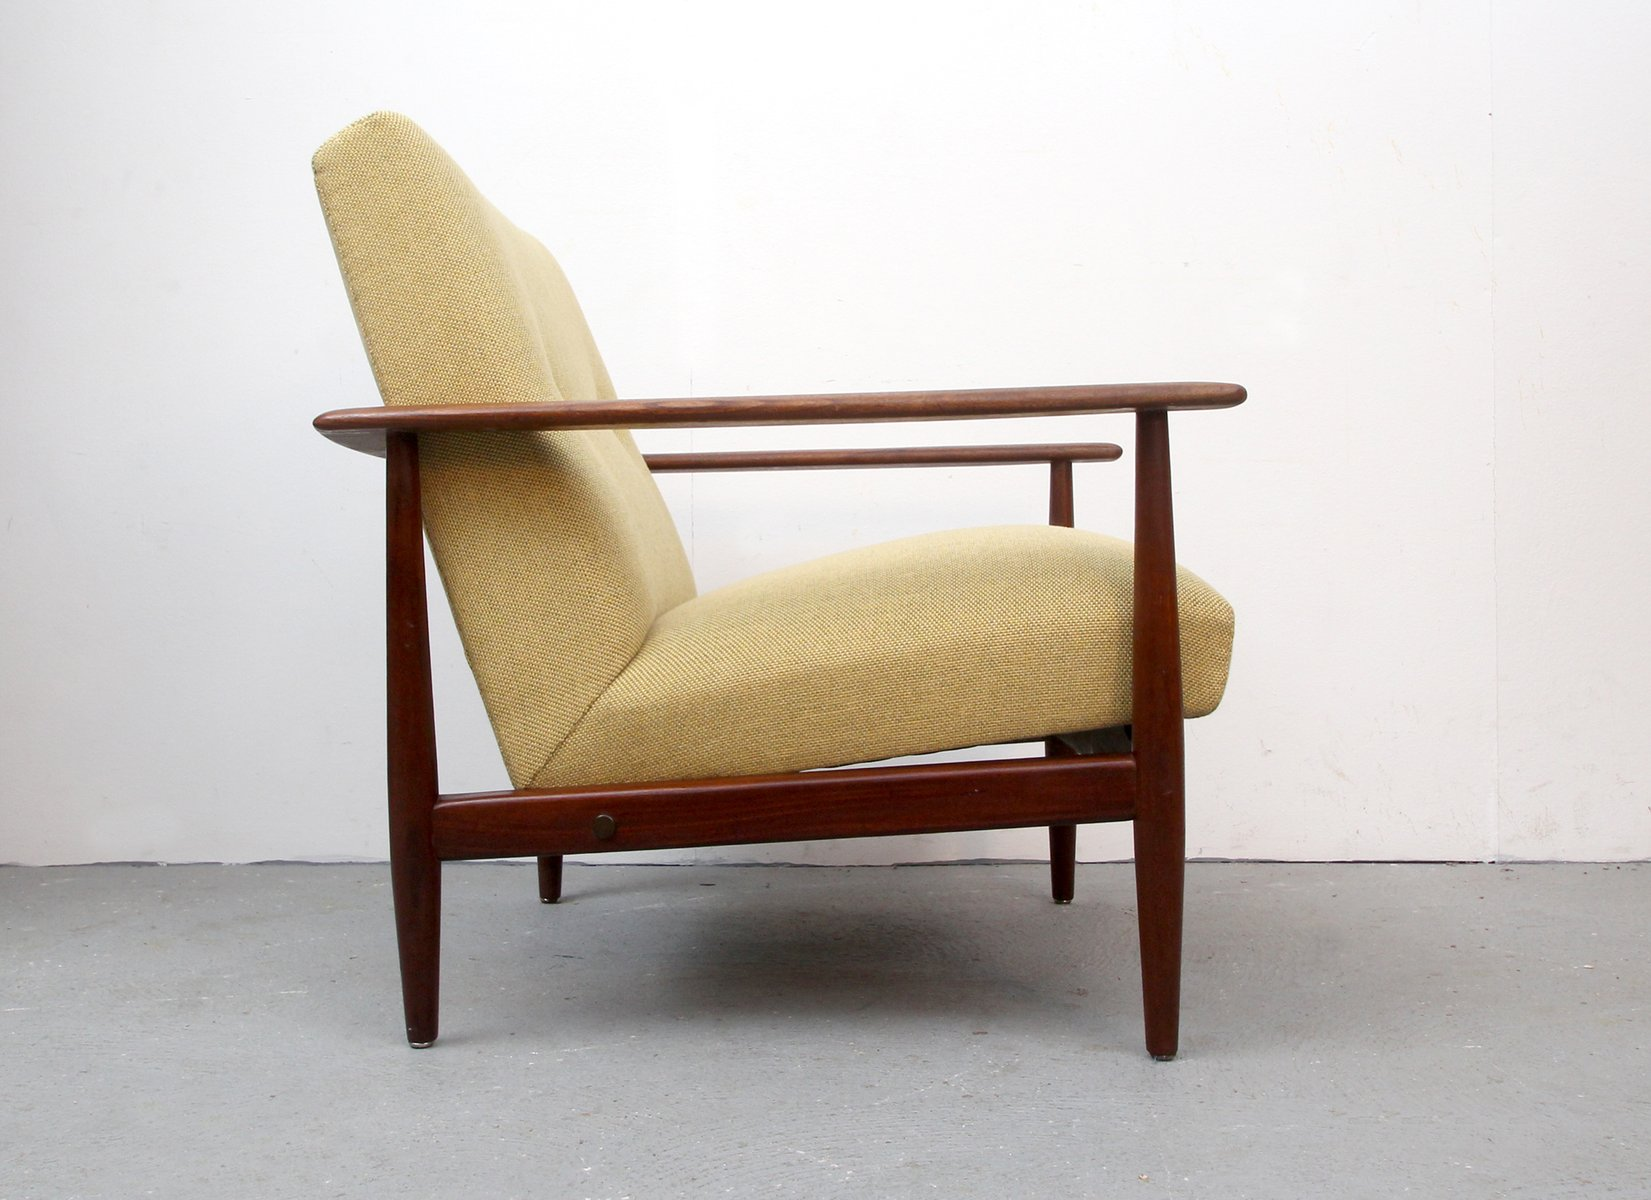 Vintage Teak Armchair with Yellow Upholstery 1960s for sale at Pamono